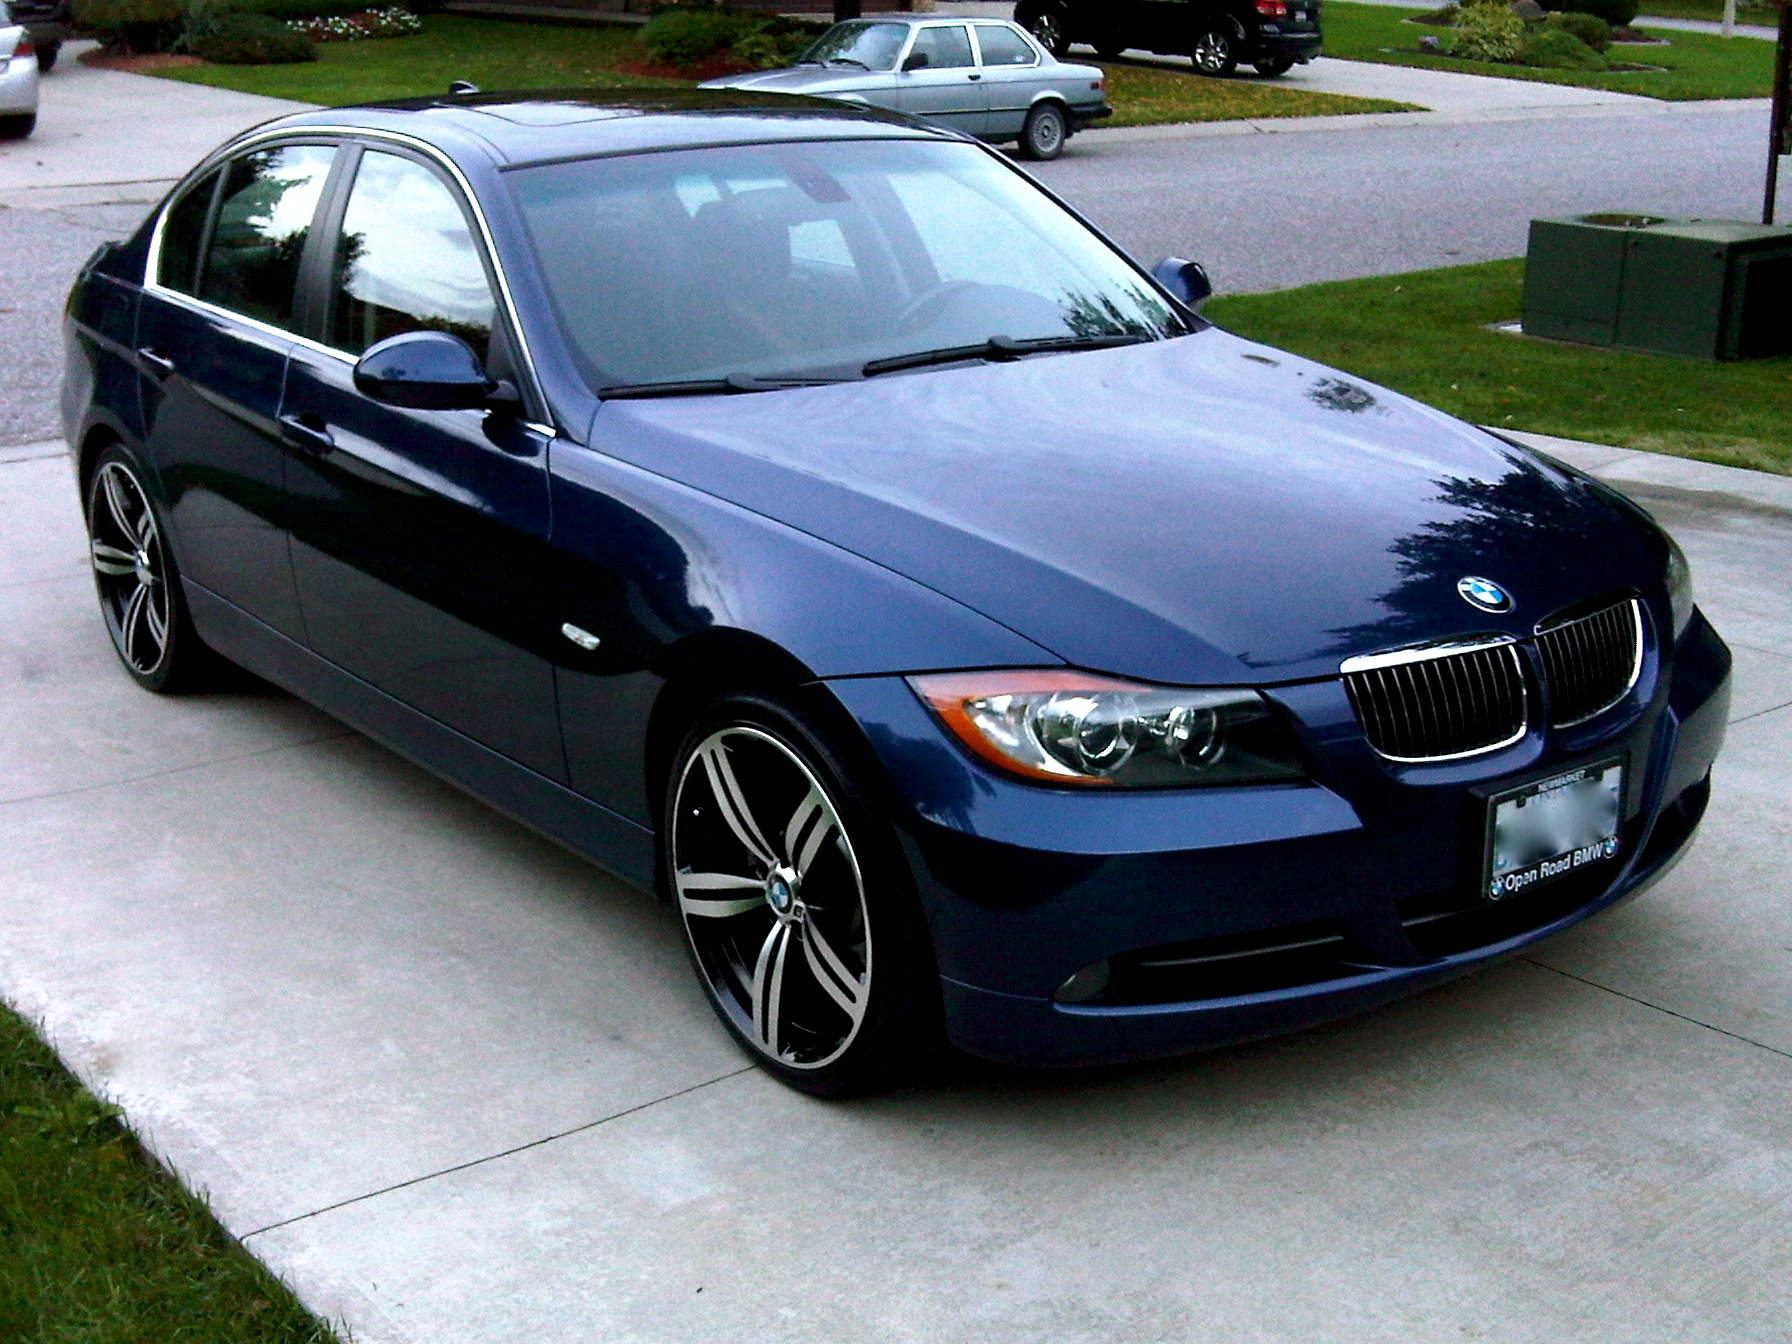 Kilsic 2006 BMW 3 Series330i Sedan 4D Specs, Photos, Modification ...